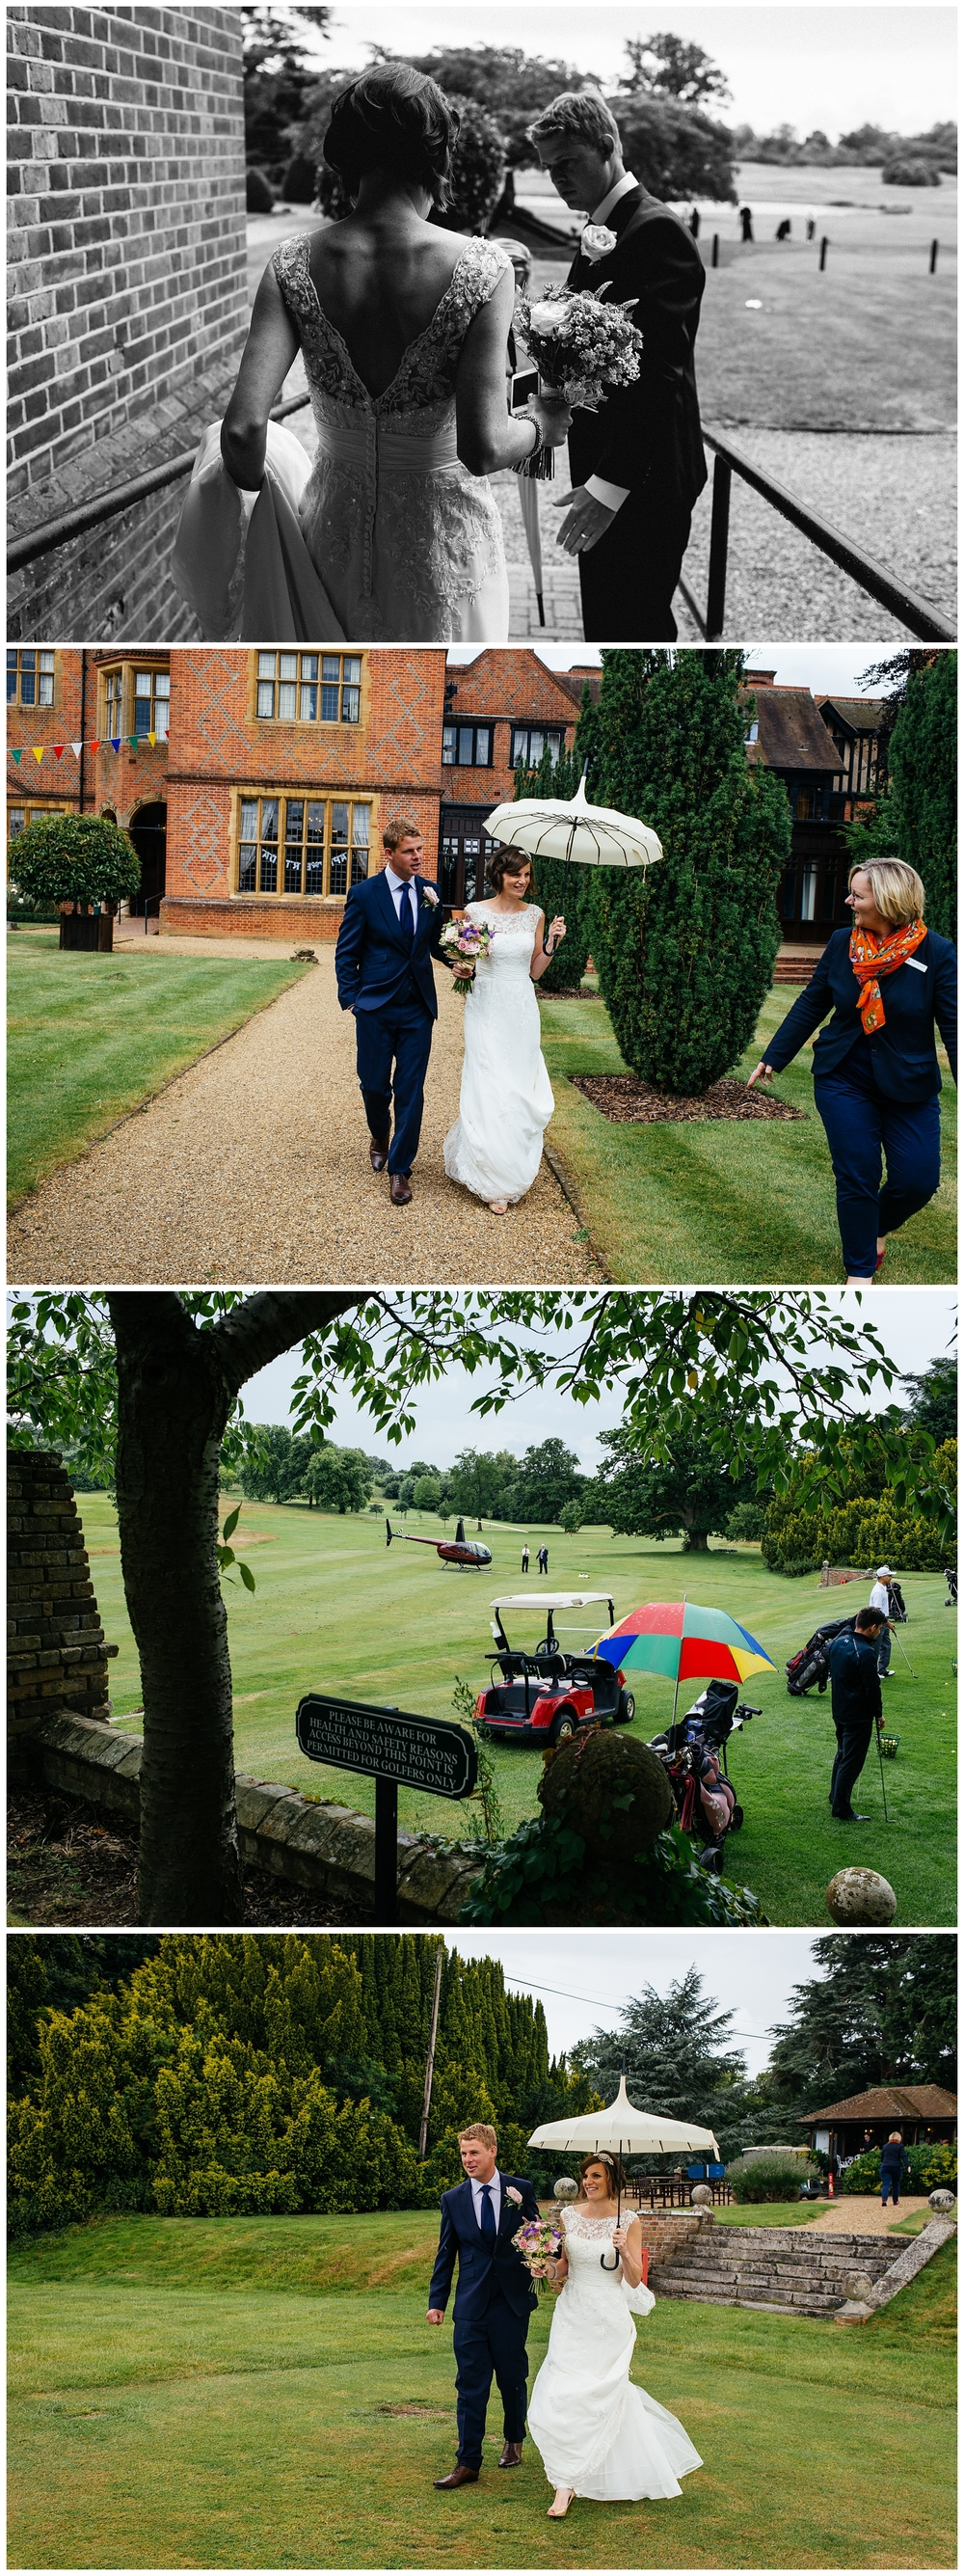 Nikki_Cooper_Photography_Emma&Owen_Wedding_Photos_Hertfordshire_1090.jpg